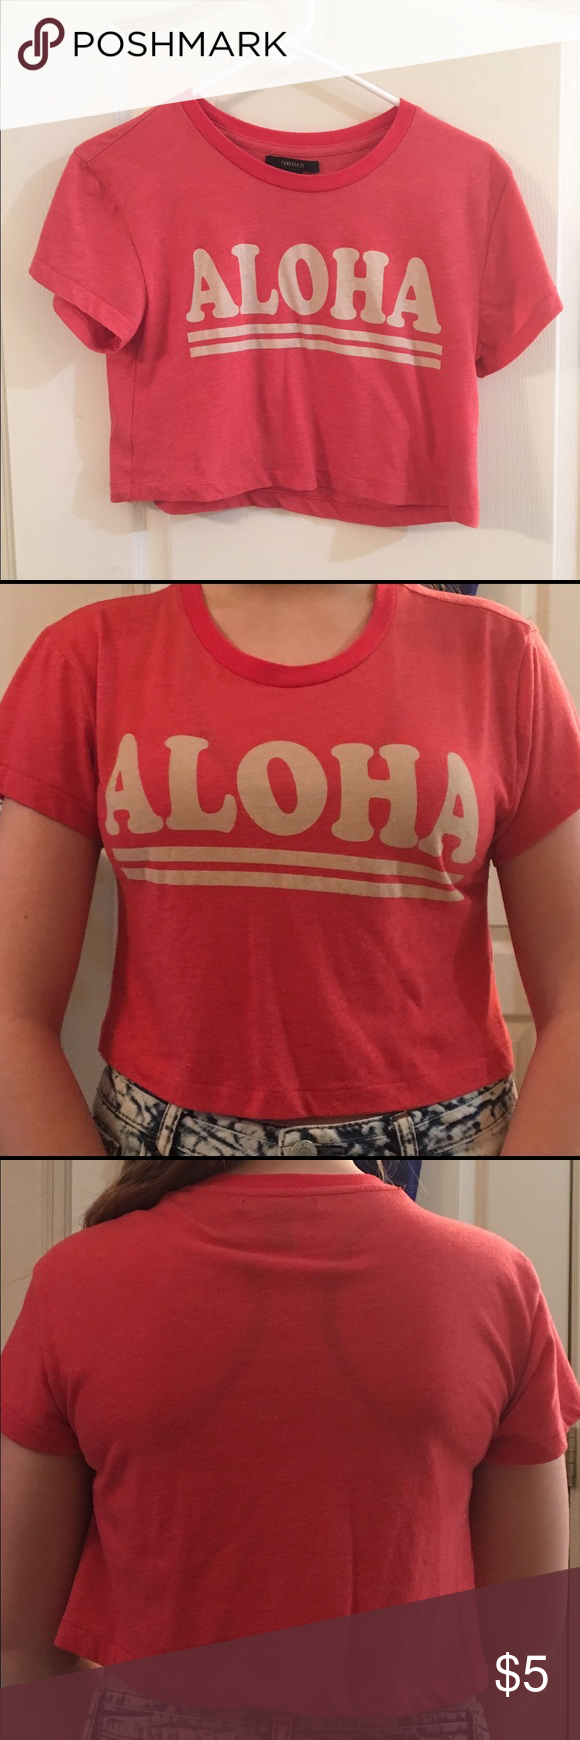 red Aloha crop top t shirt material, barely worn, no flaws, comfy Forever 21 Tops Crop Tops